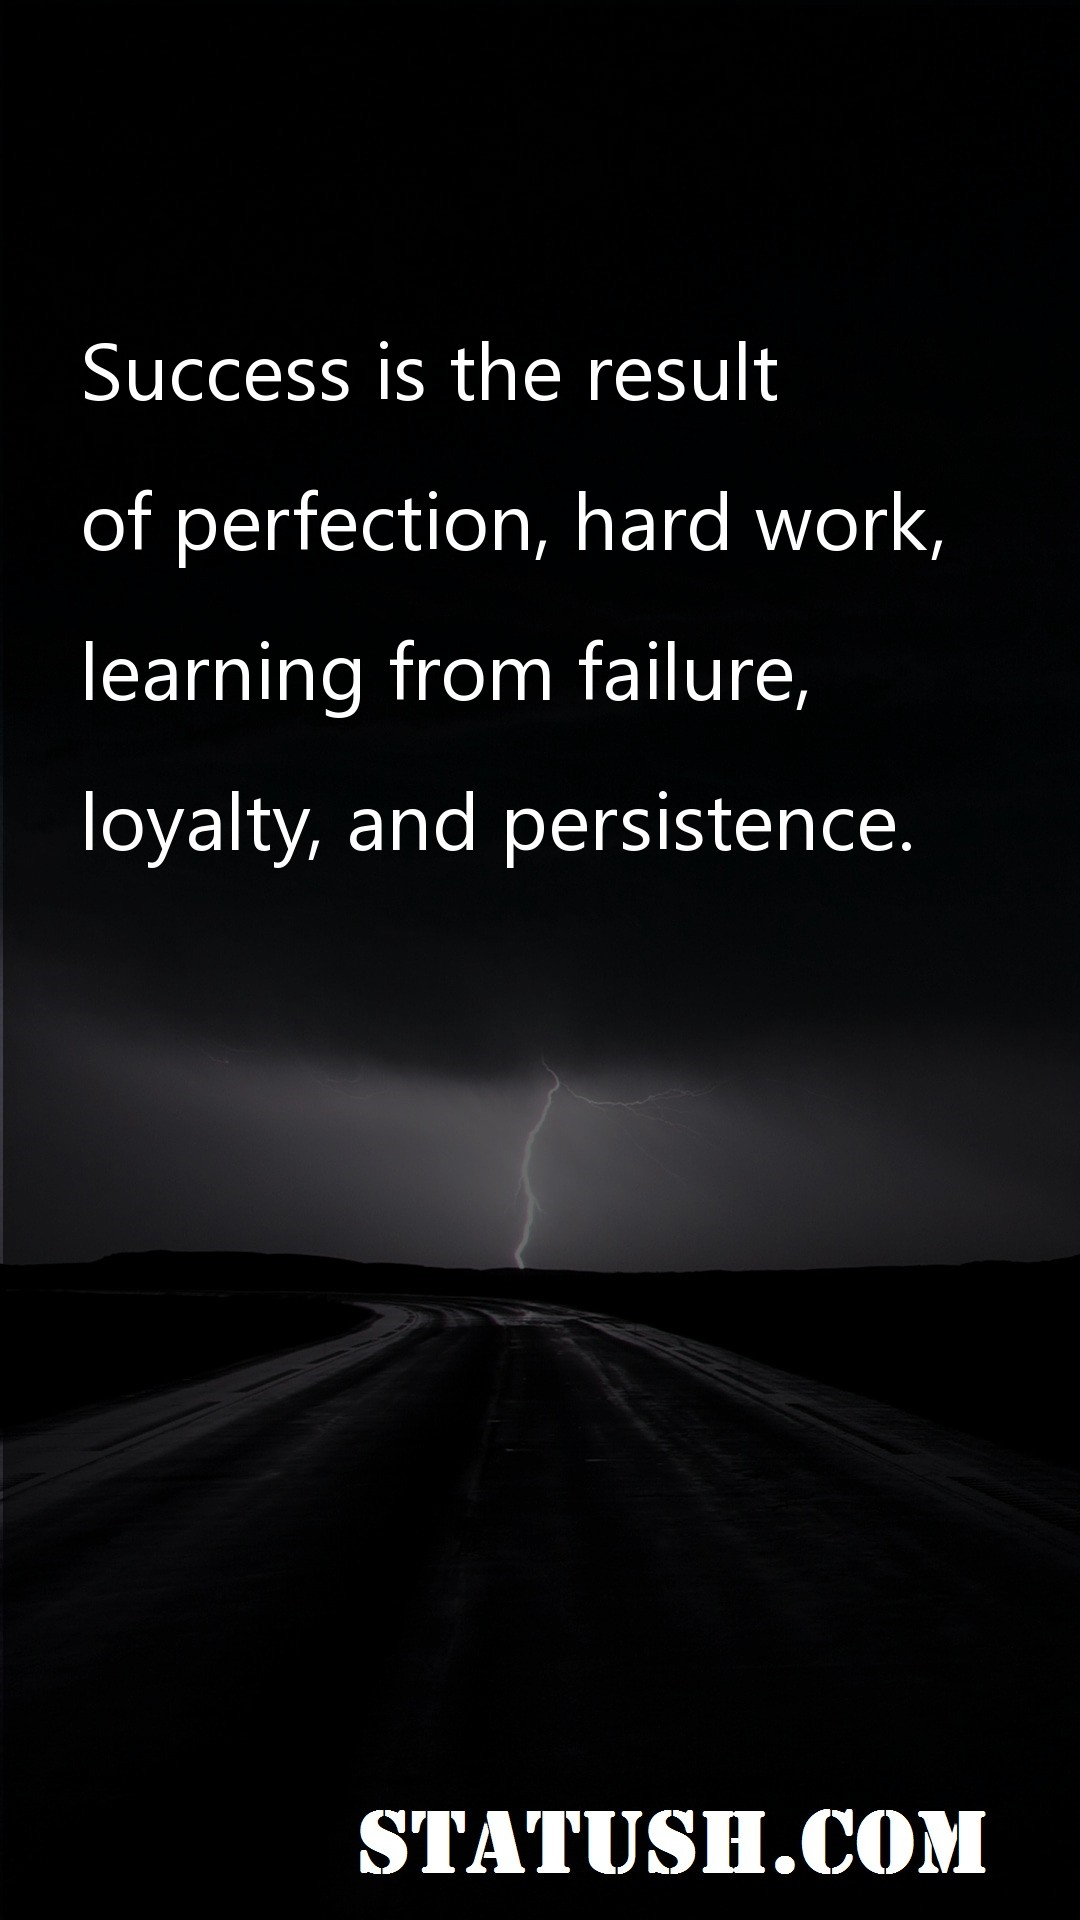 Success is the result of perfection